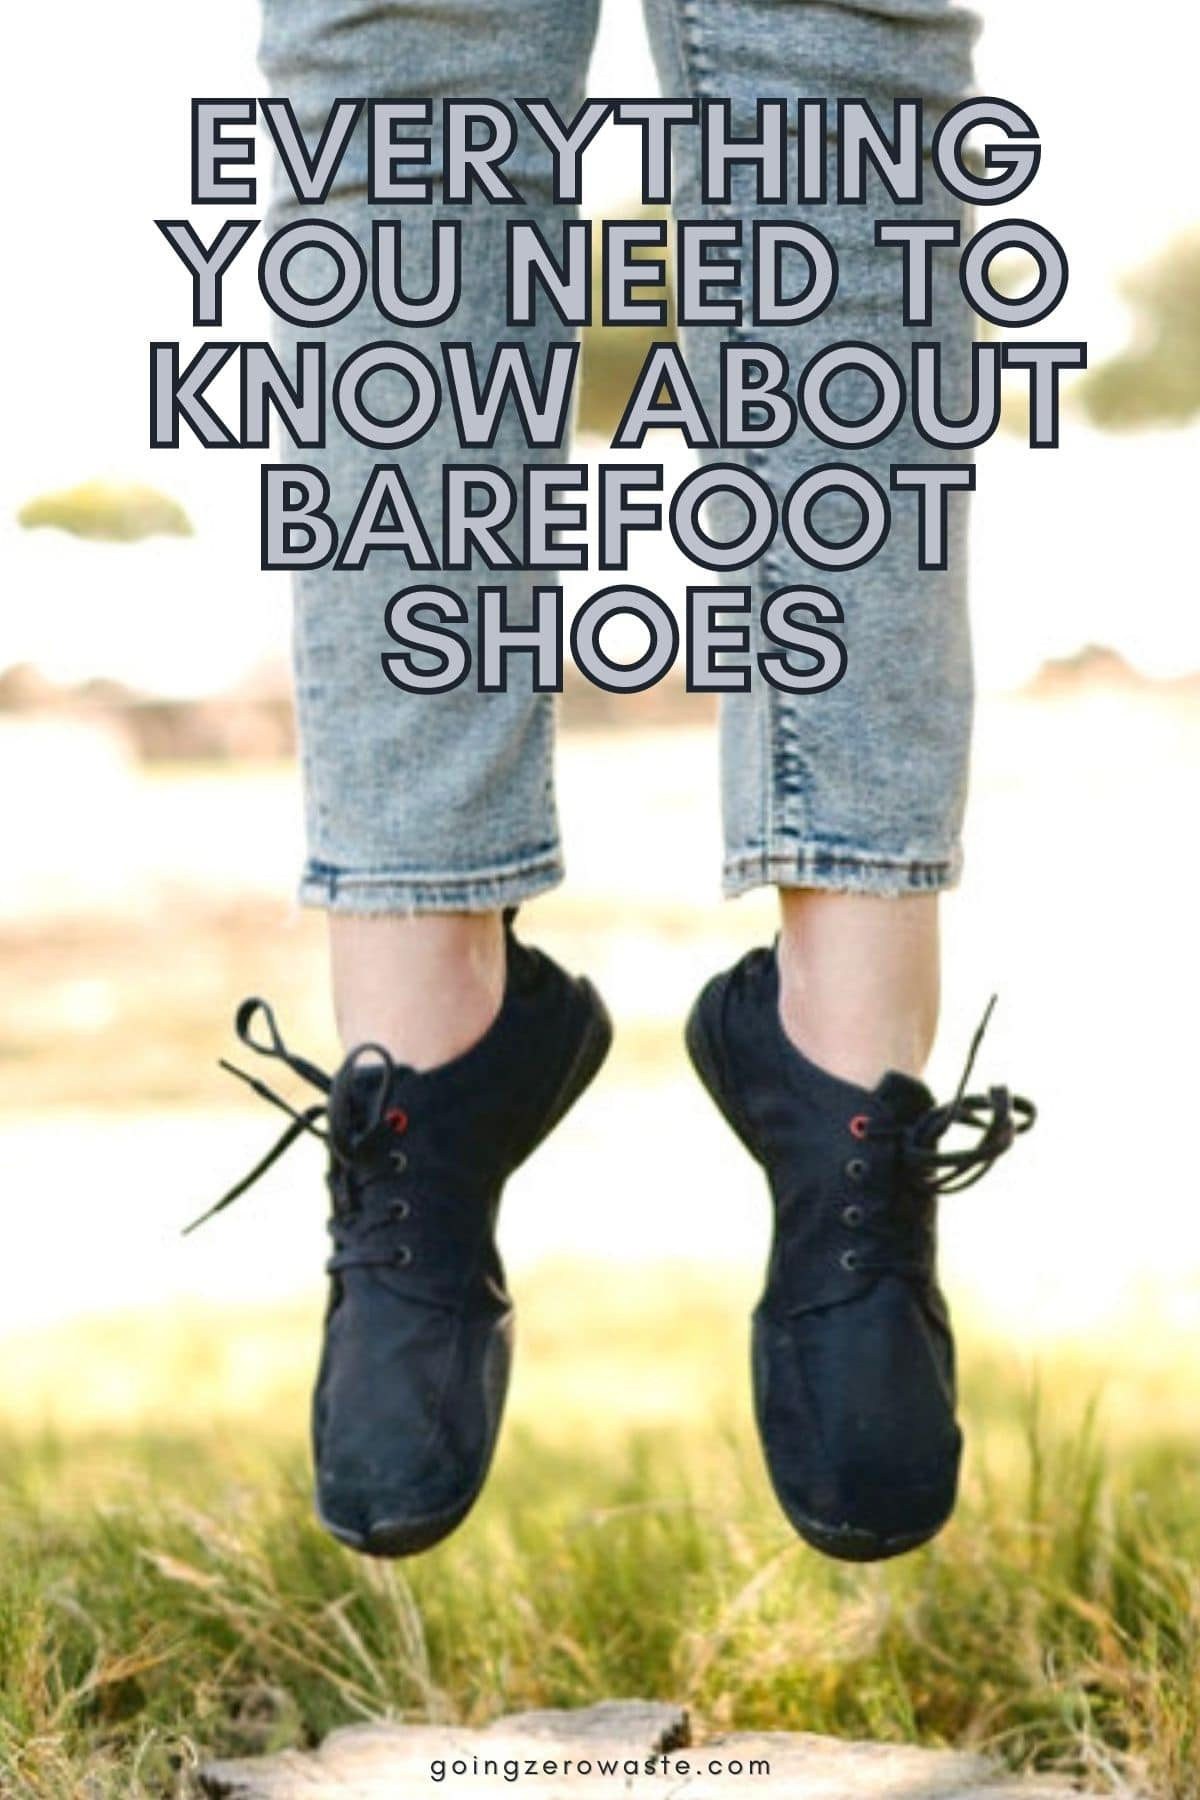 Wildling Shoes: Everything You Need to Know About Barefoot Shoes